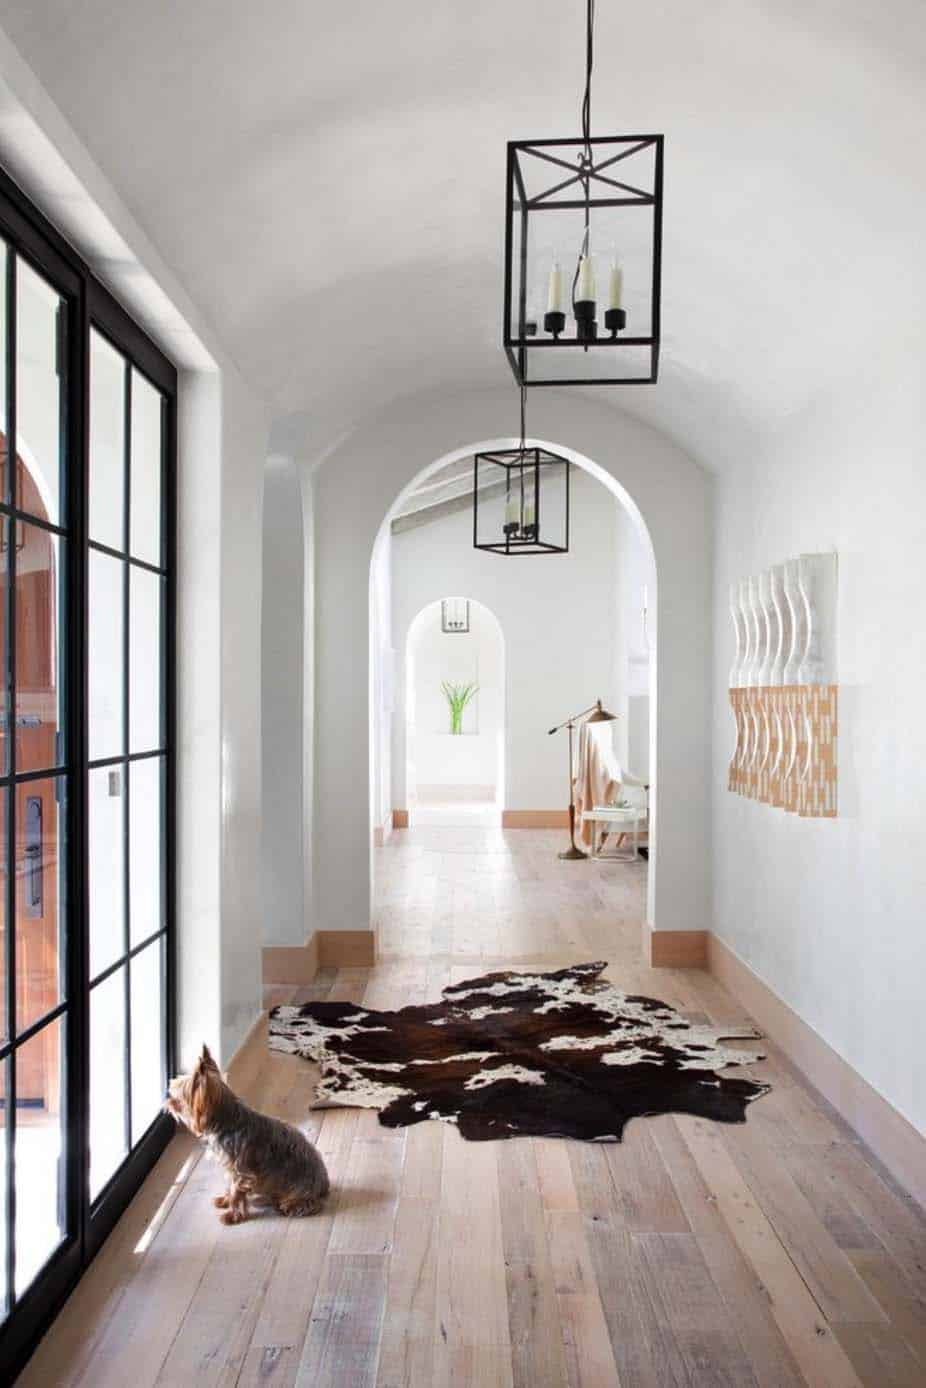 Mediterranean Style Home-Ryan Street Associates-02-1 Kindesign